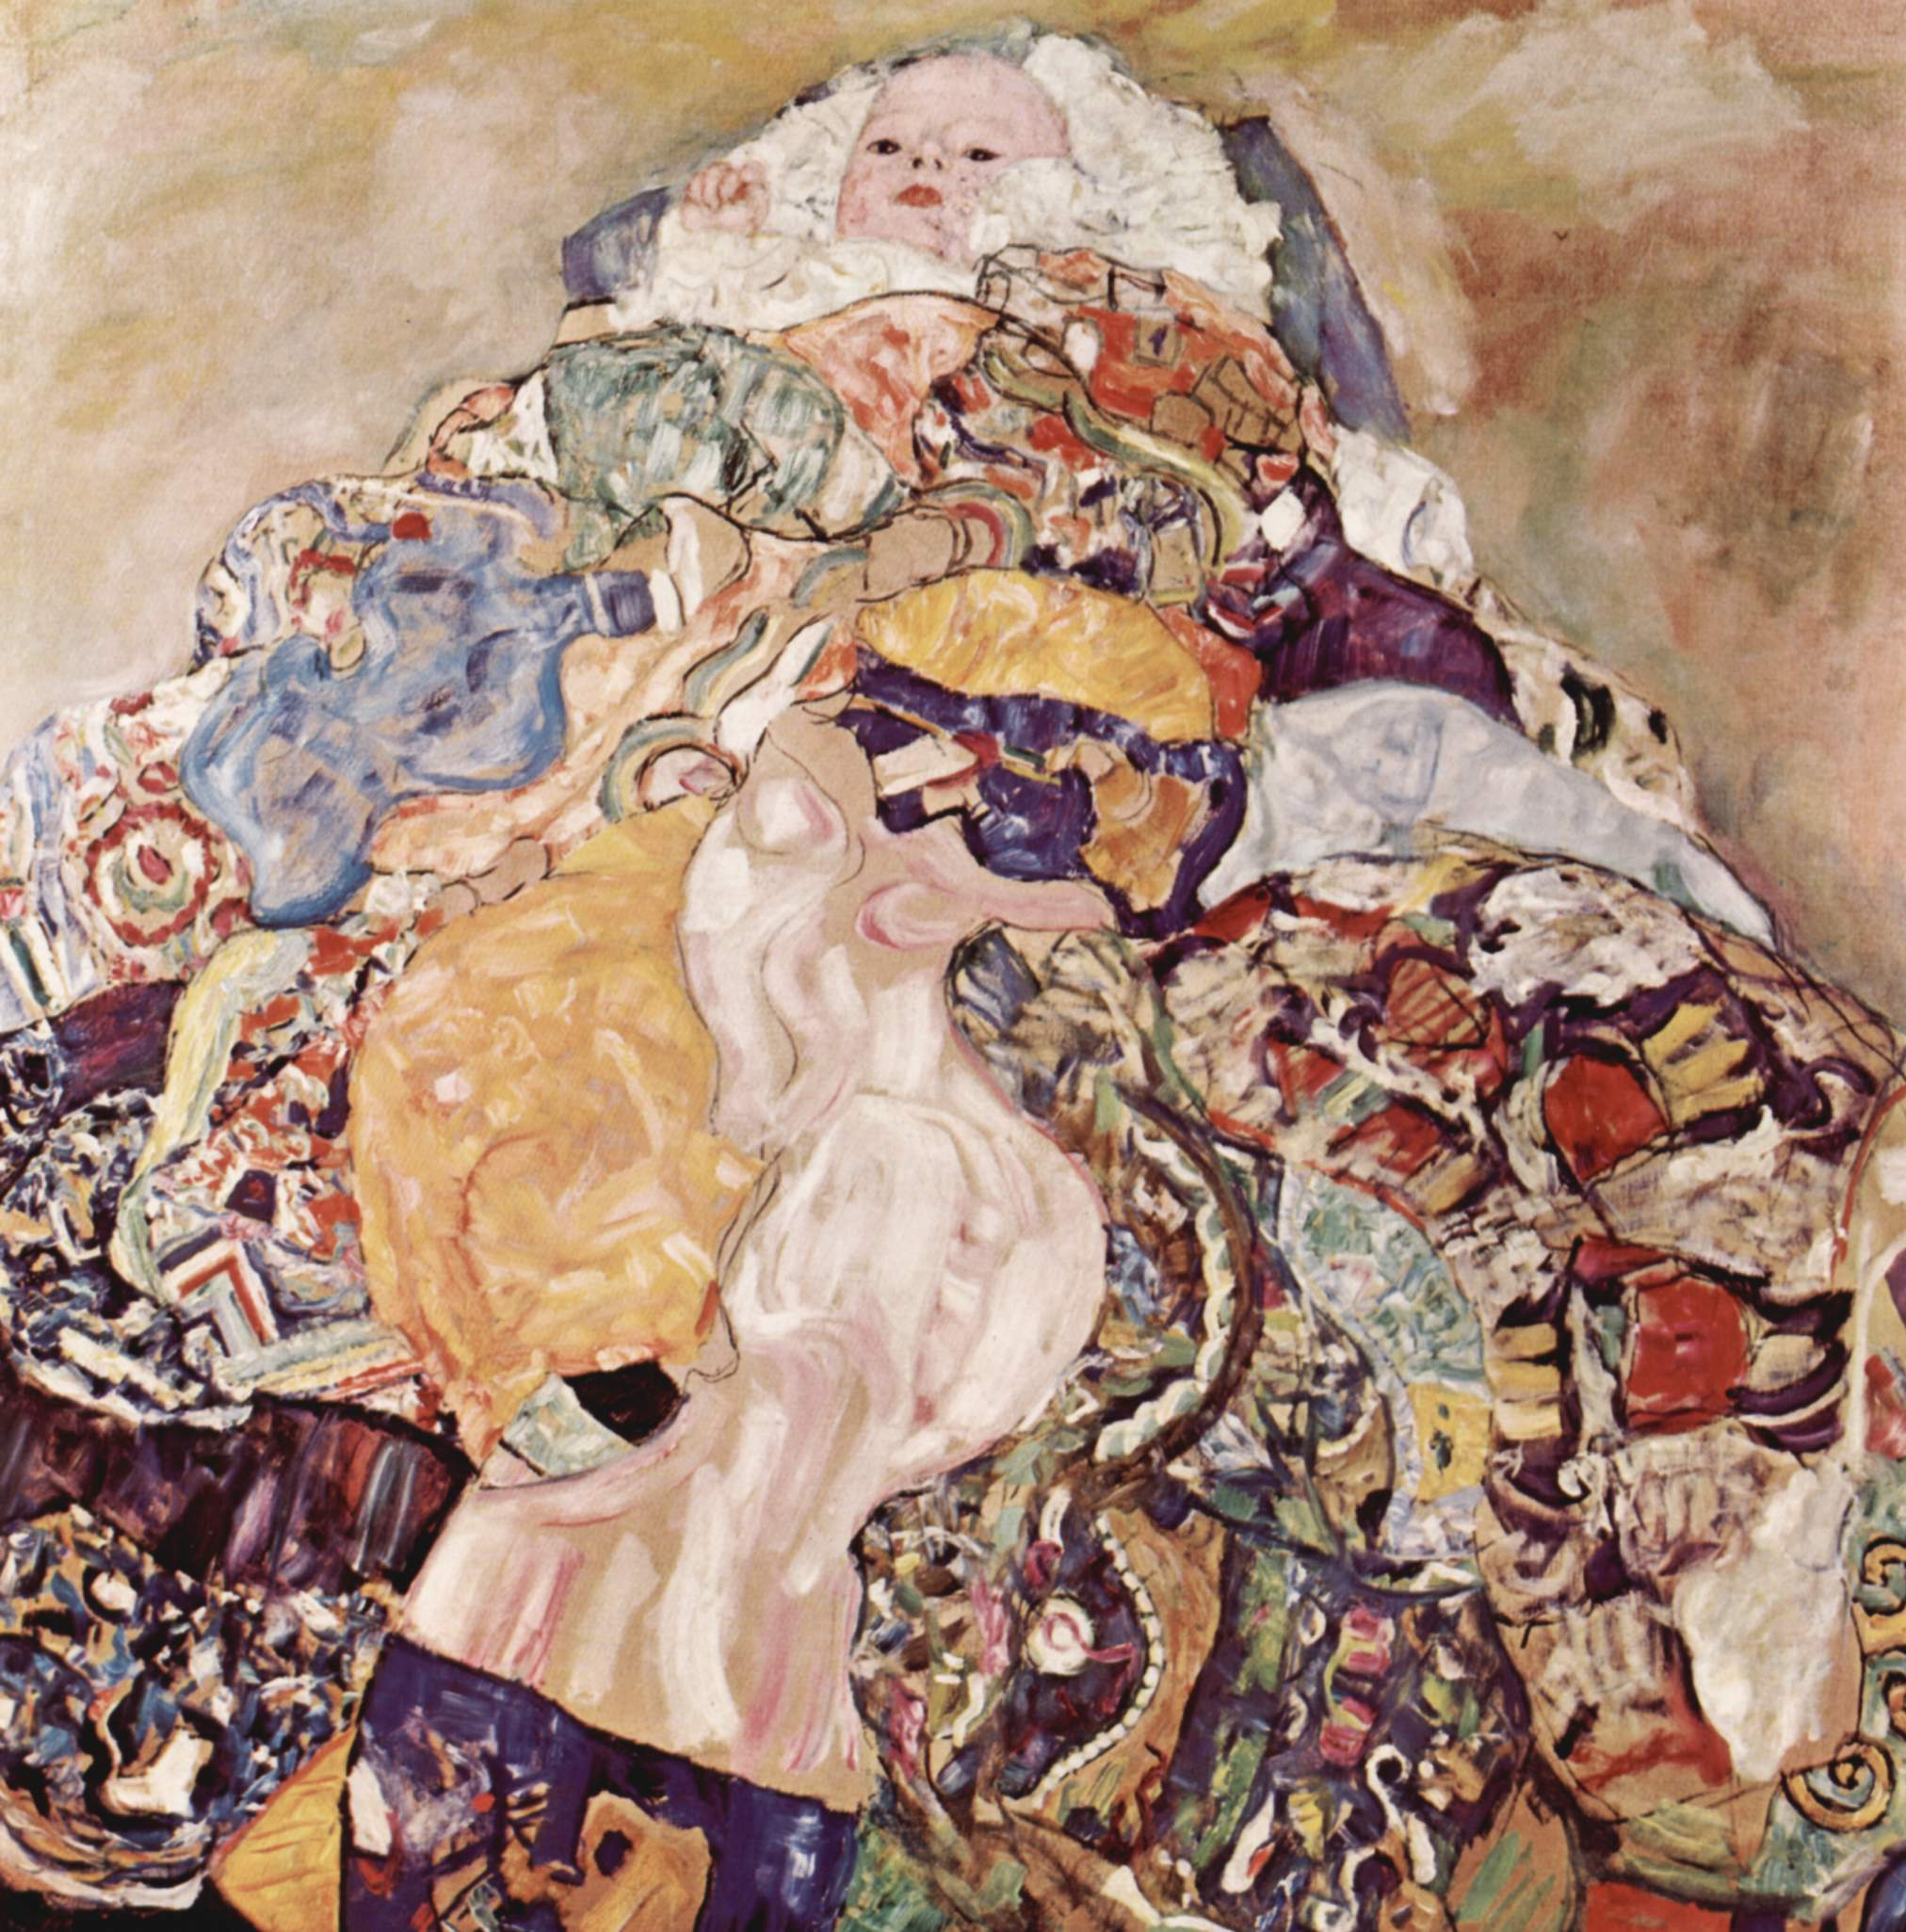 gustav klimt Gustav klimtprints - klimt reproductions - canvas art for sale : printoyster.